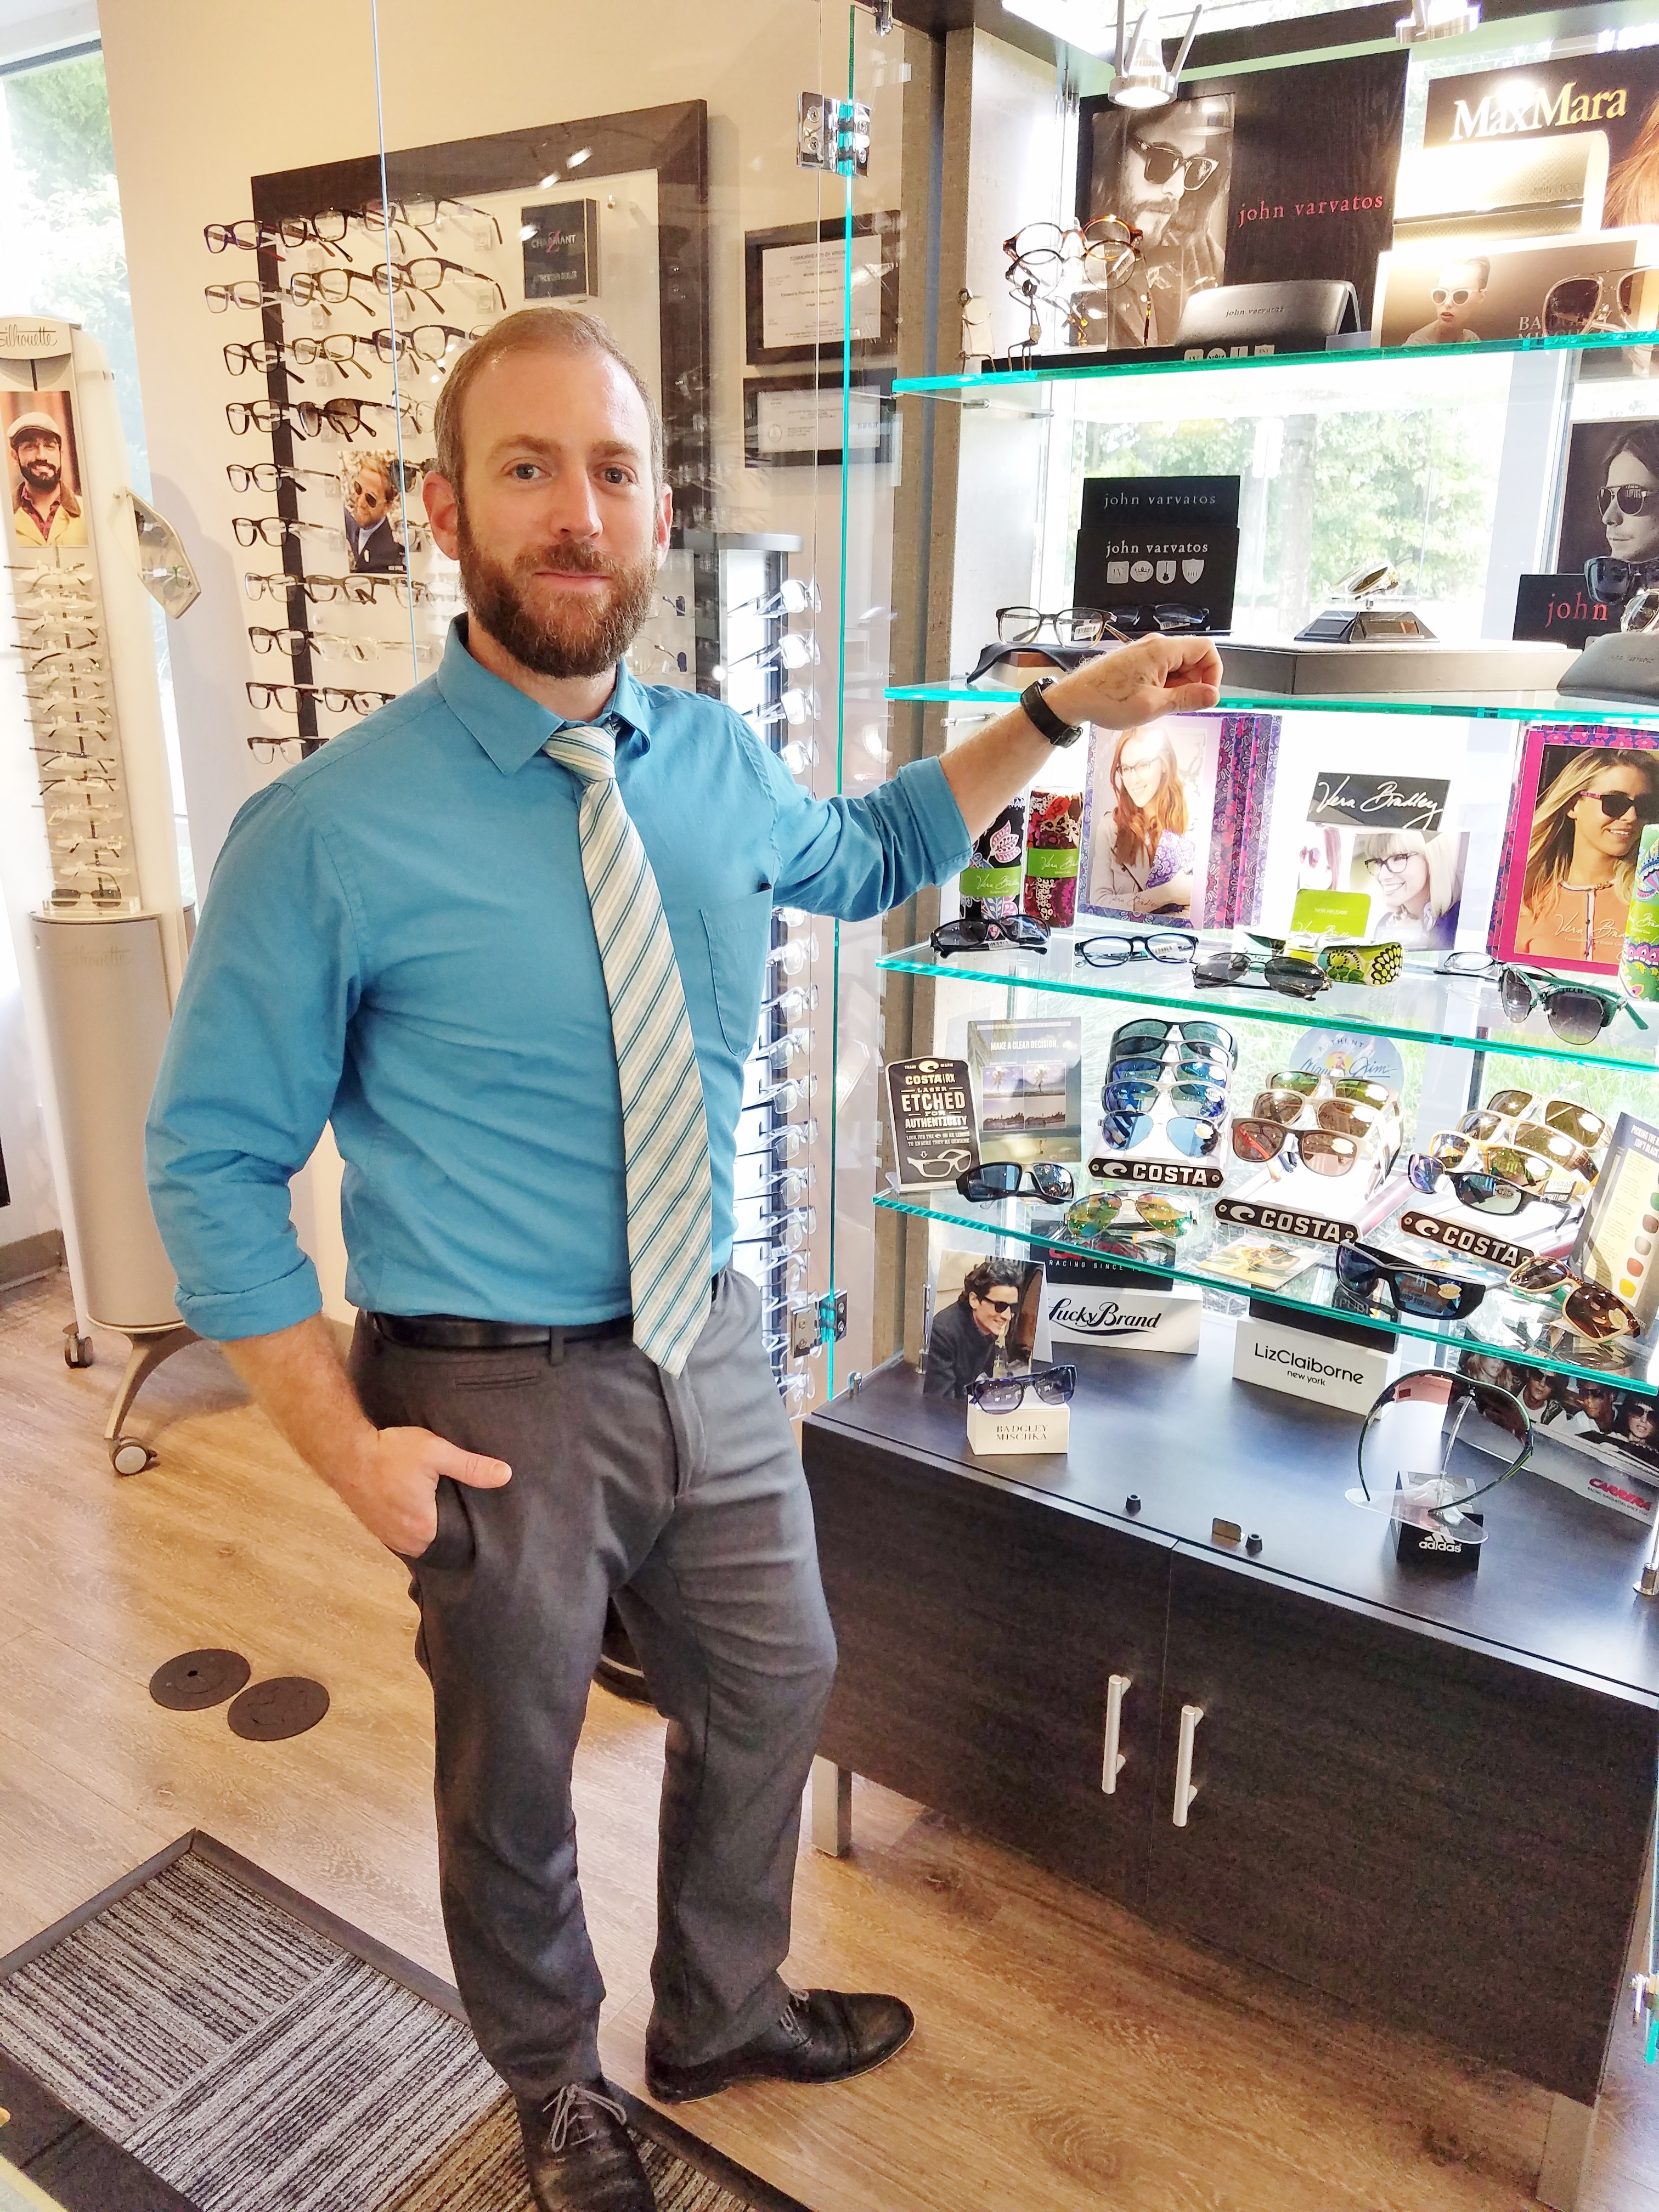 At Ridgefield Vision Center, we stock more than 800 frames personally selected by Mike so our patients enjoy a wide selection.